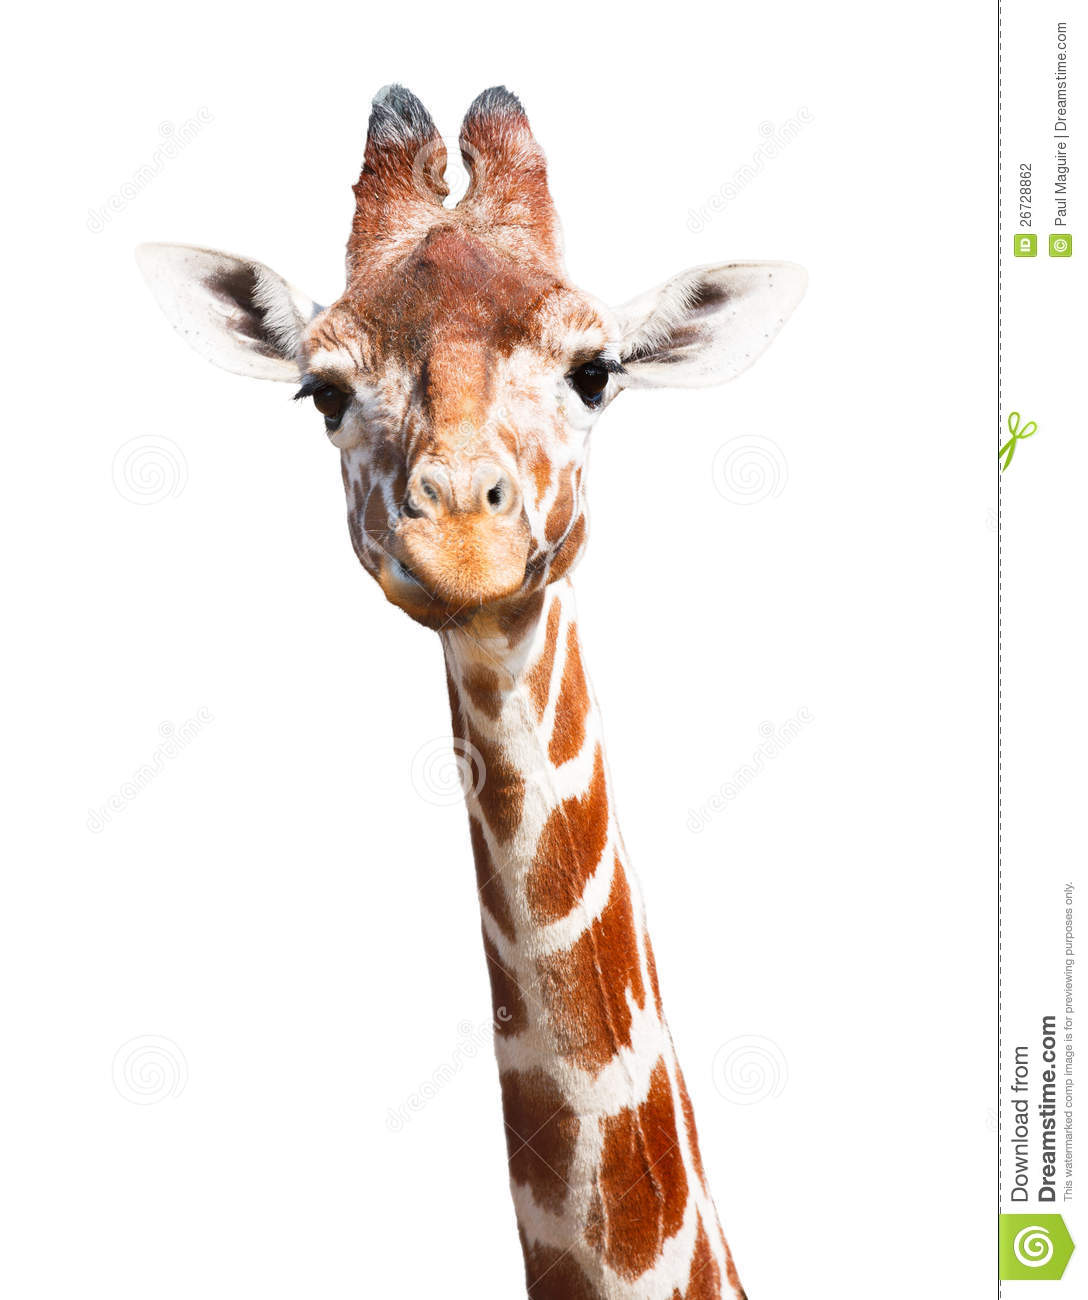 giraffe head white background - photo #9